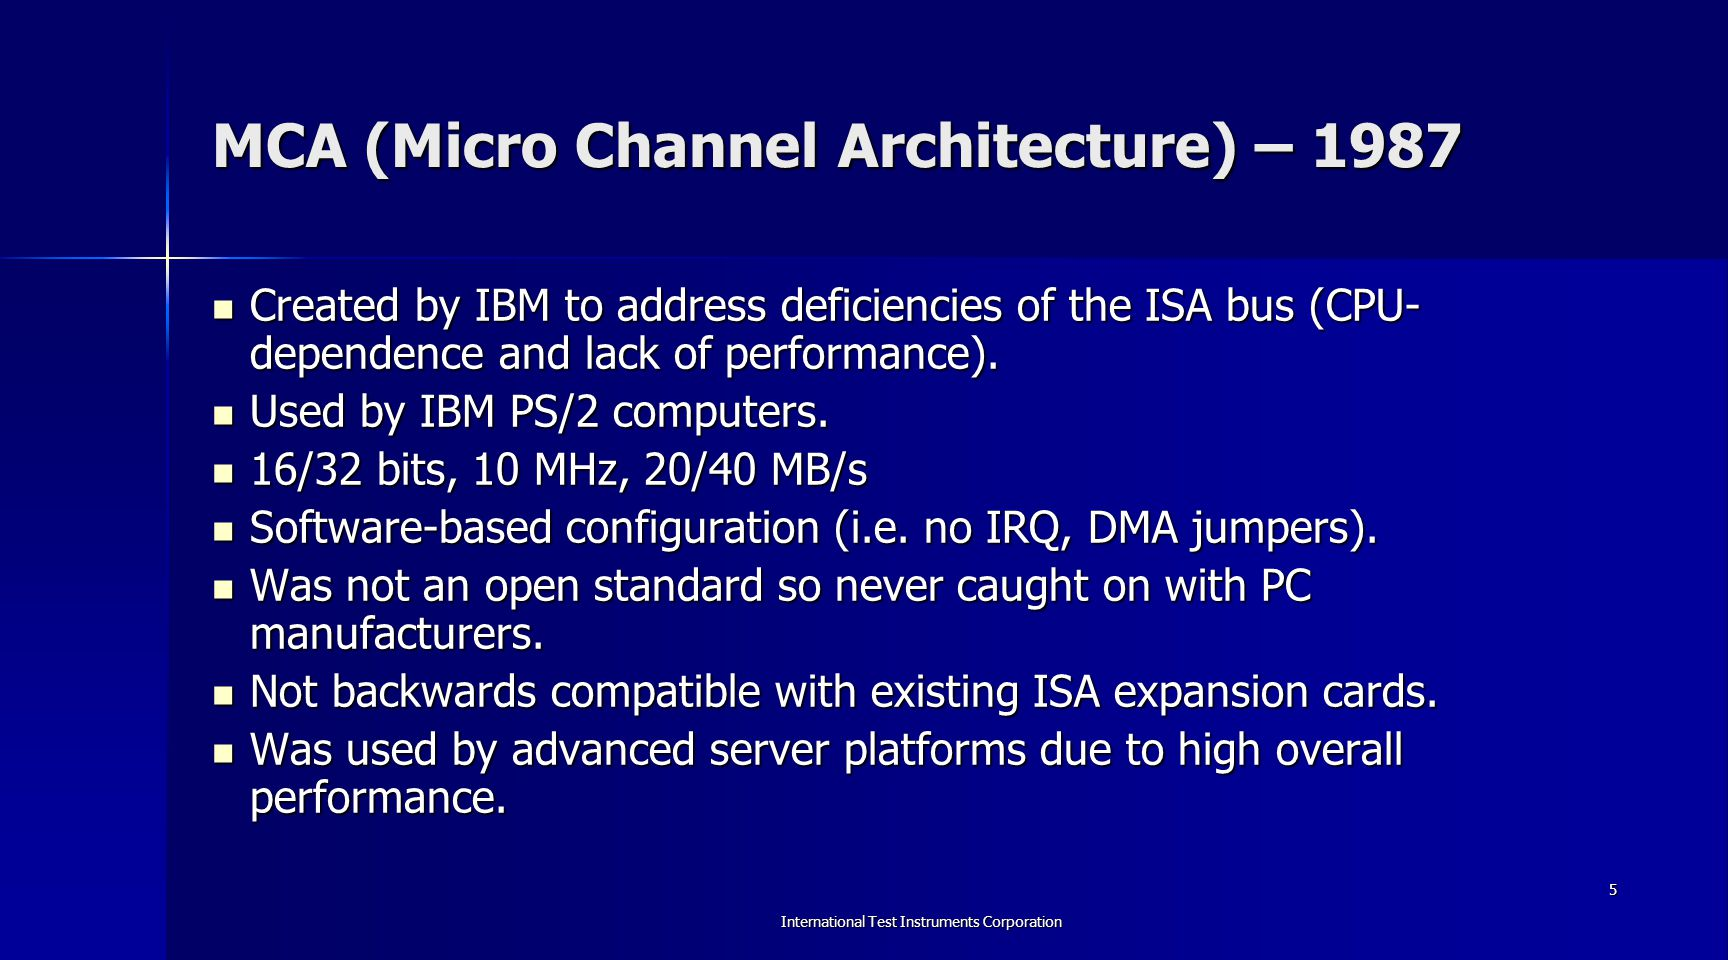 MCA (Micro Channel Architecture) – 1987